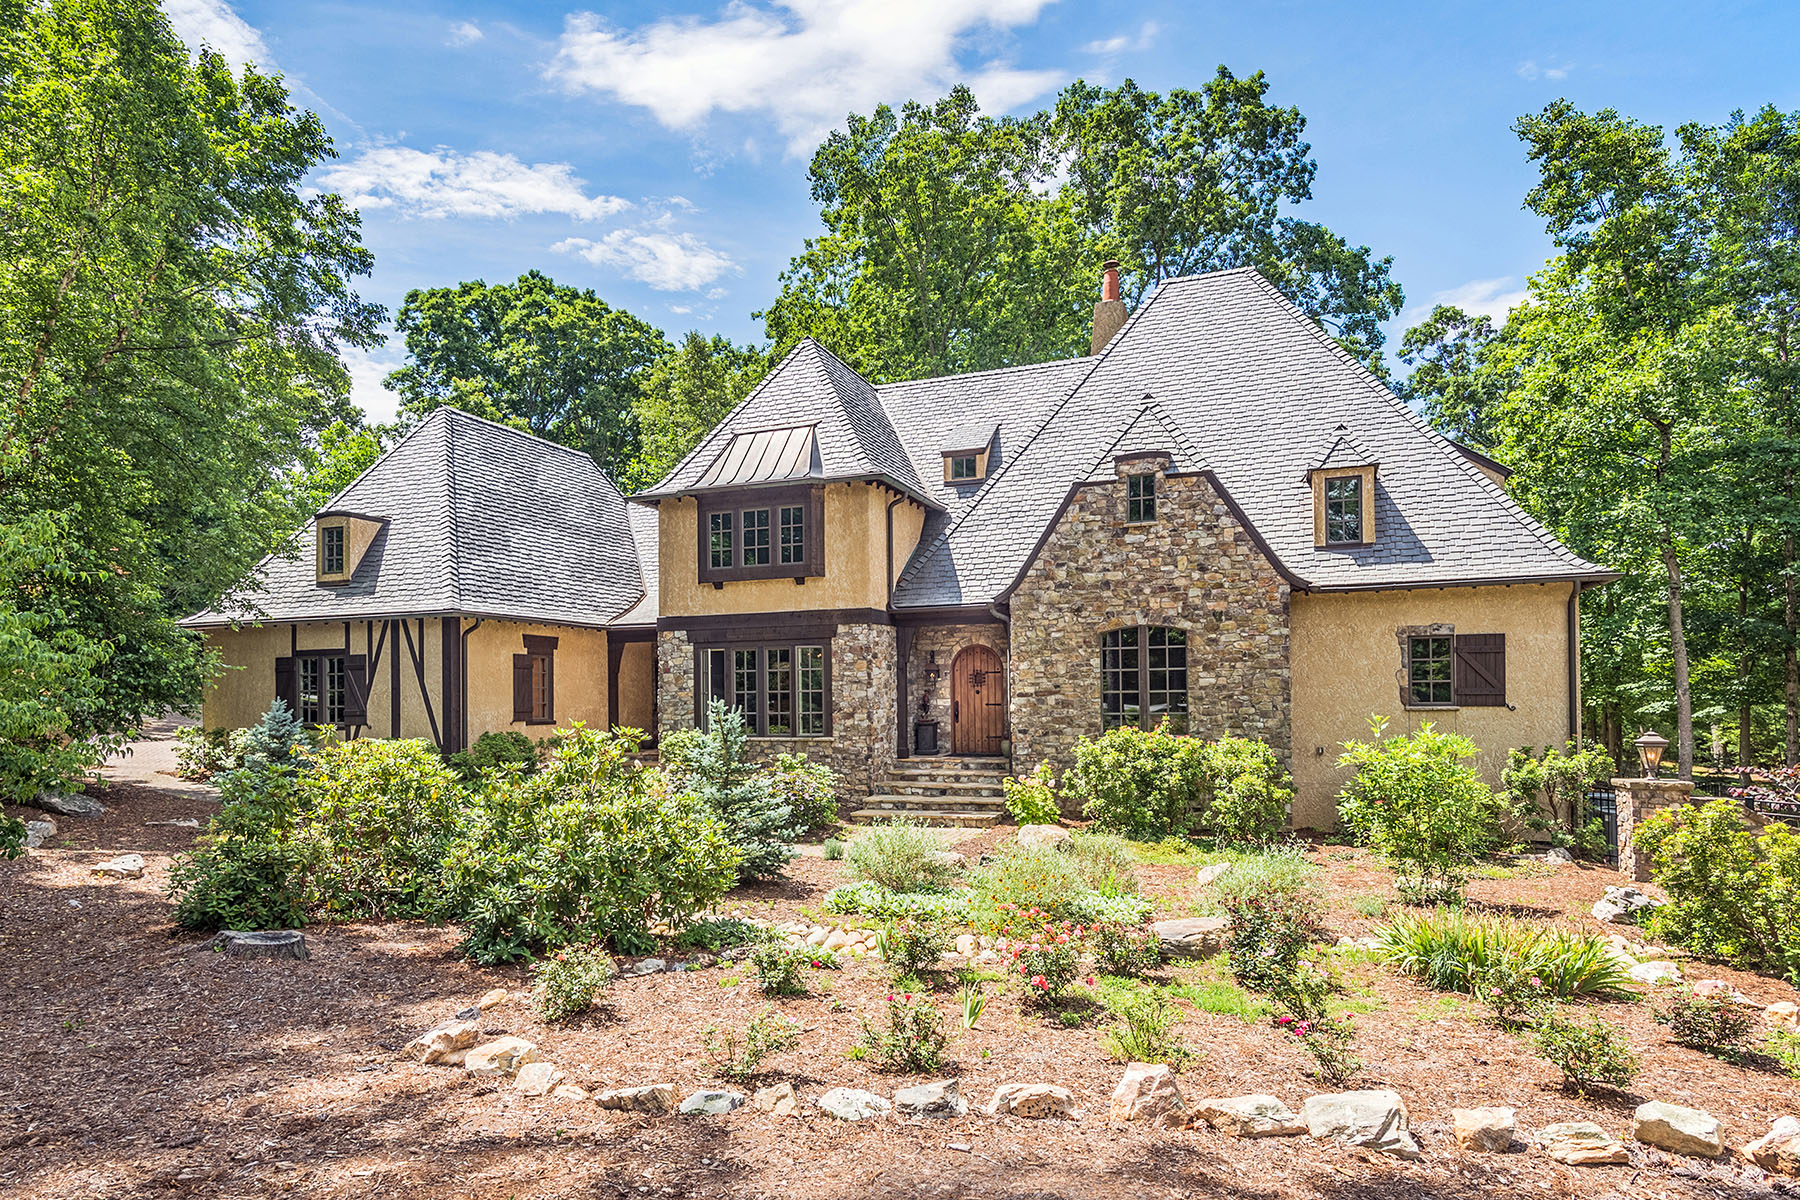 Single Family Homes for Active at RAMBLE BILTMORE FOREST 176 Valley Springs Rd Asheville, North Carolina 28803 United States